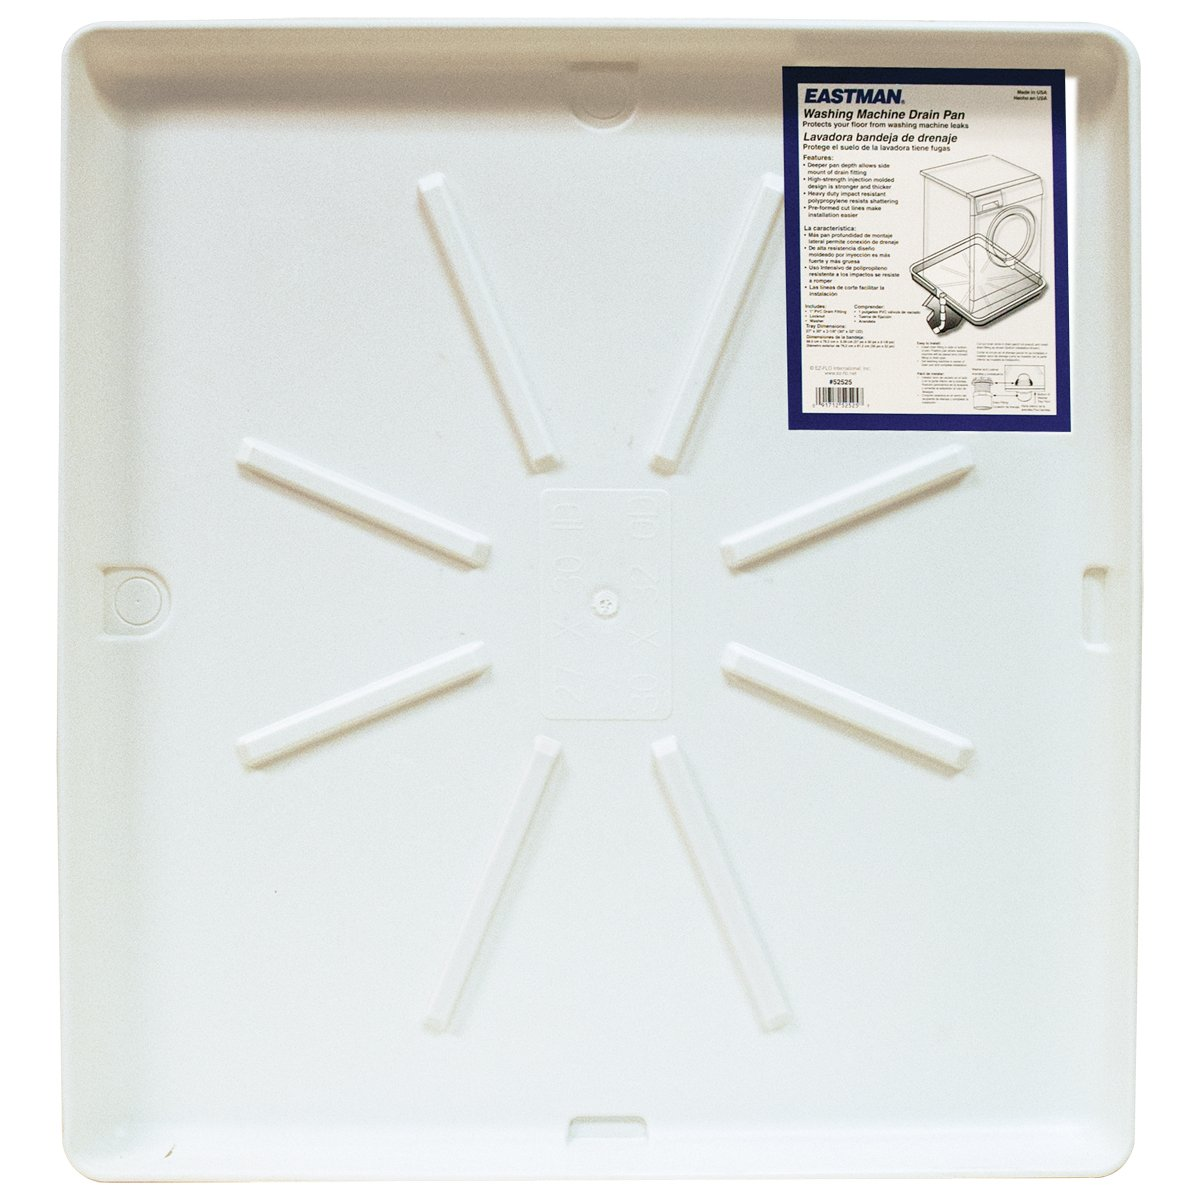 Eastman 52525 Washing Machine Pan, 30'' x 32''